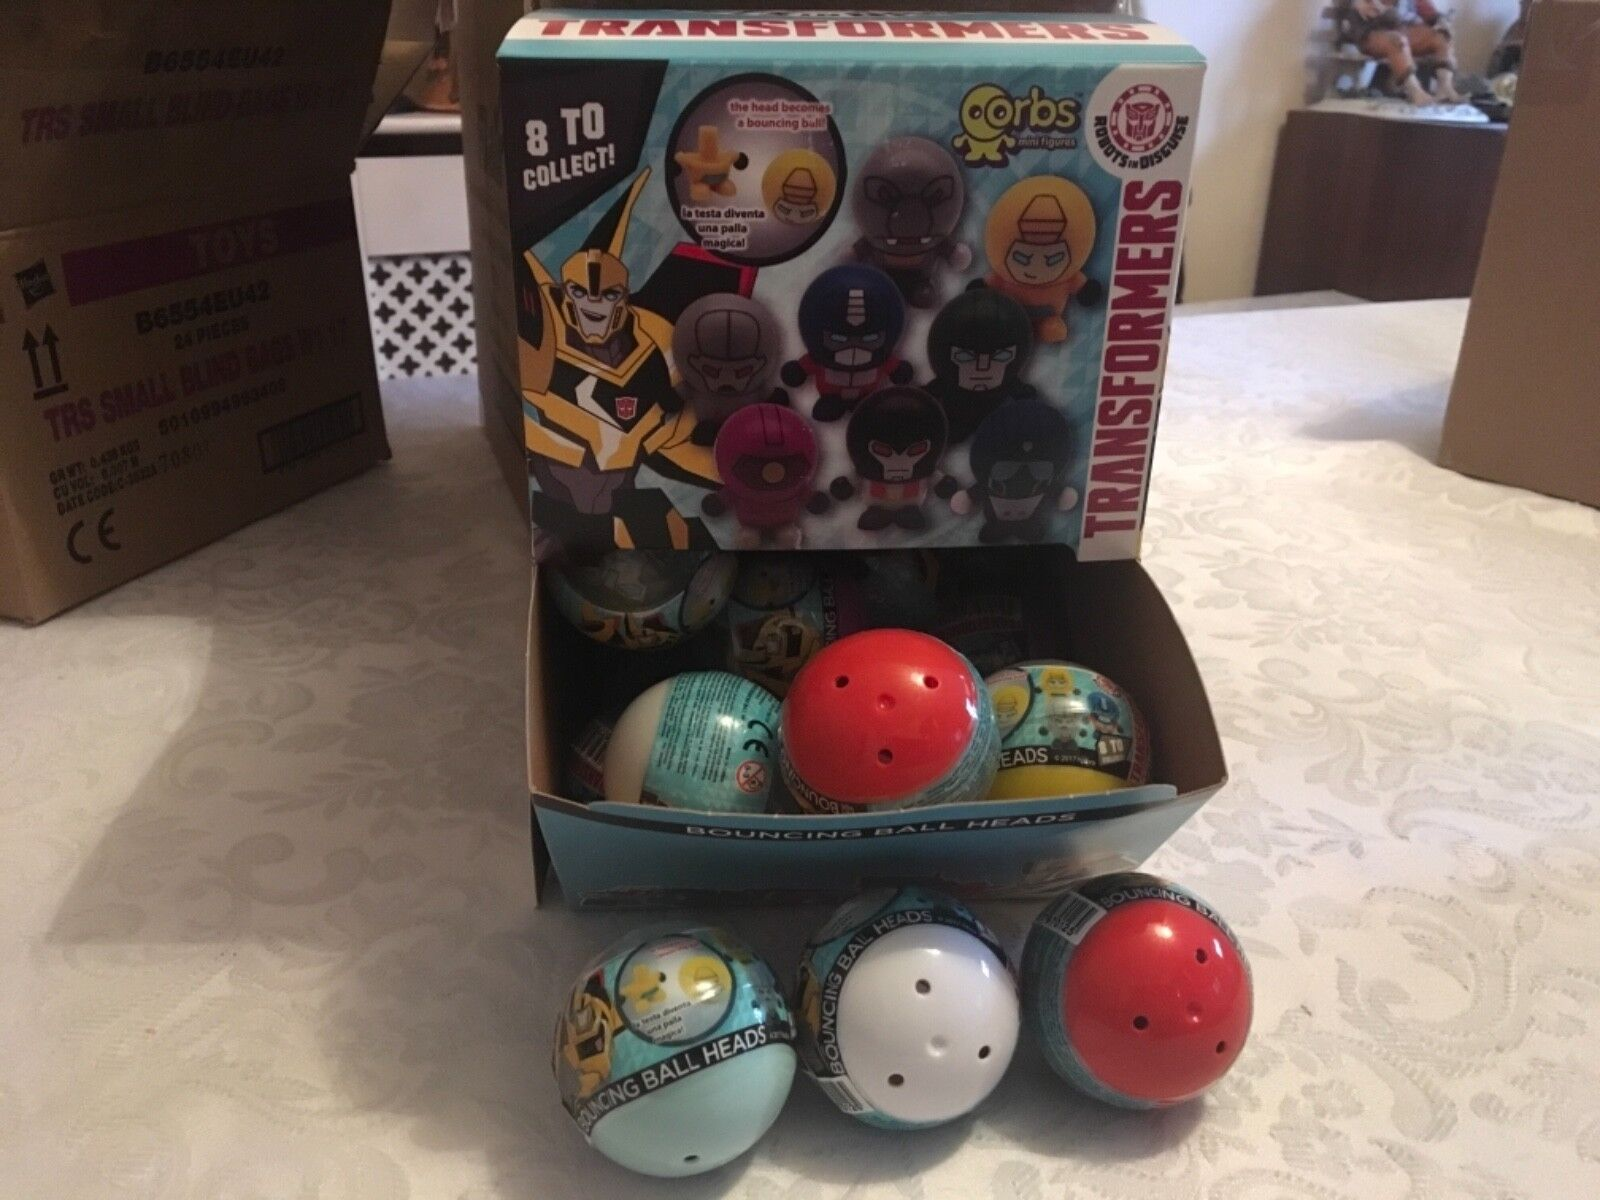 16 x OFFICIAL TRANSFORMERS ORBS BLIND BAGS BOUNCING BALL HEADS 2 of each colour